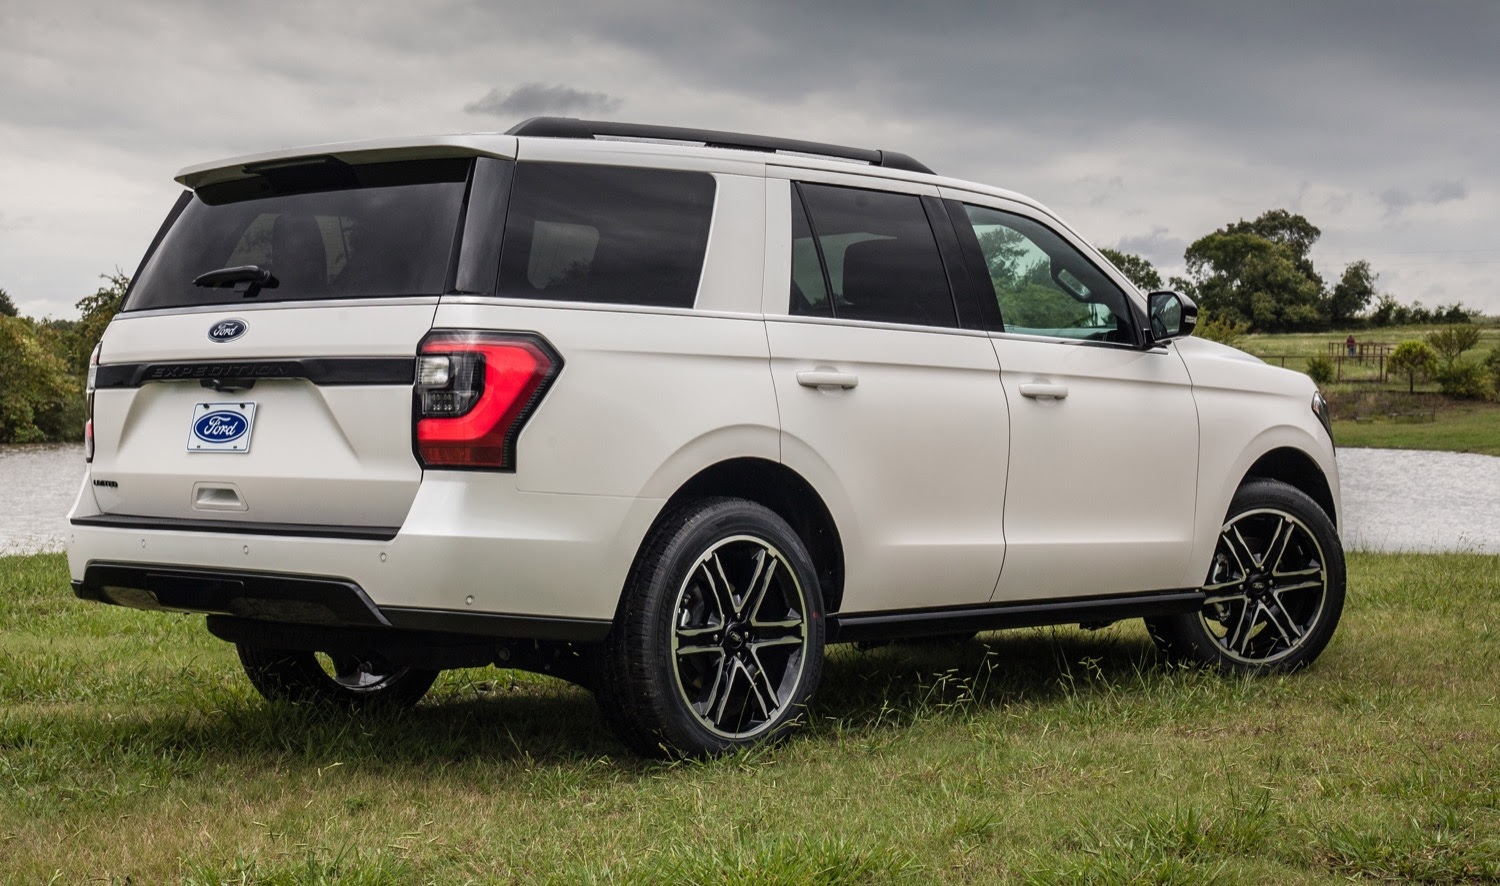 Ford Expedition Discount Reduces Price By 20 In July 2019